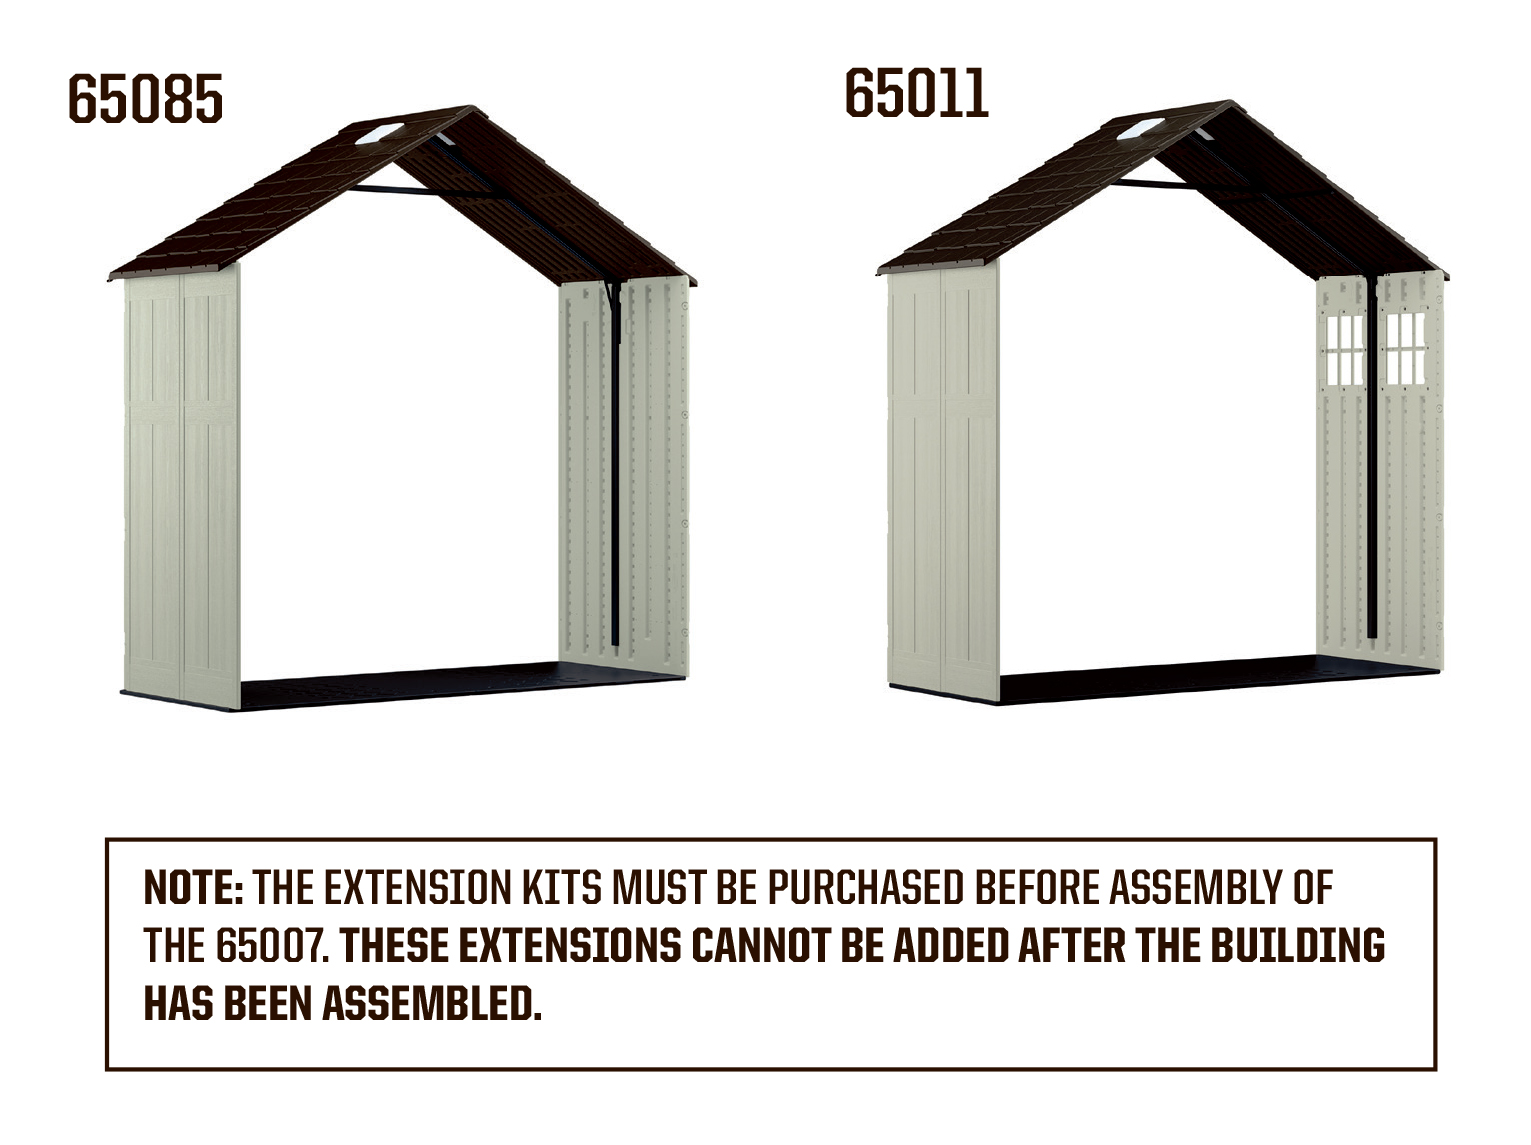 Craftsman 3-ft. Shed Extension Kit for 65007 8X7